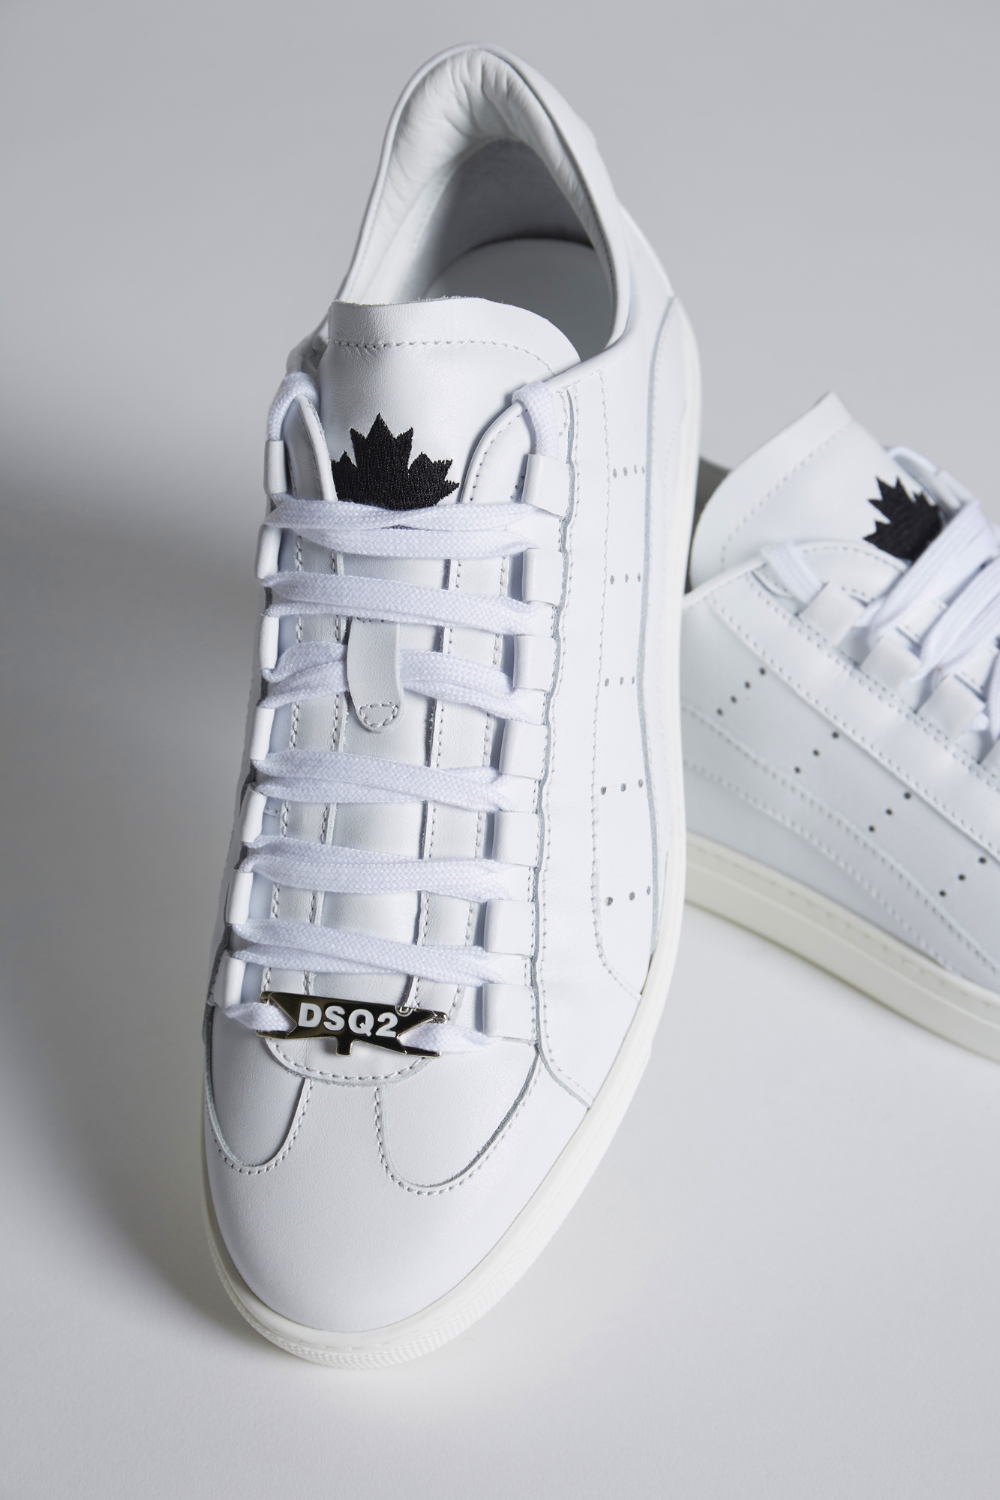 Dsquared2 551 Sneakers White - Sneakers